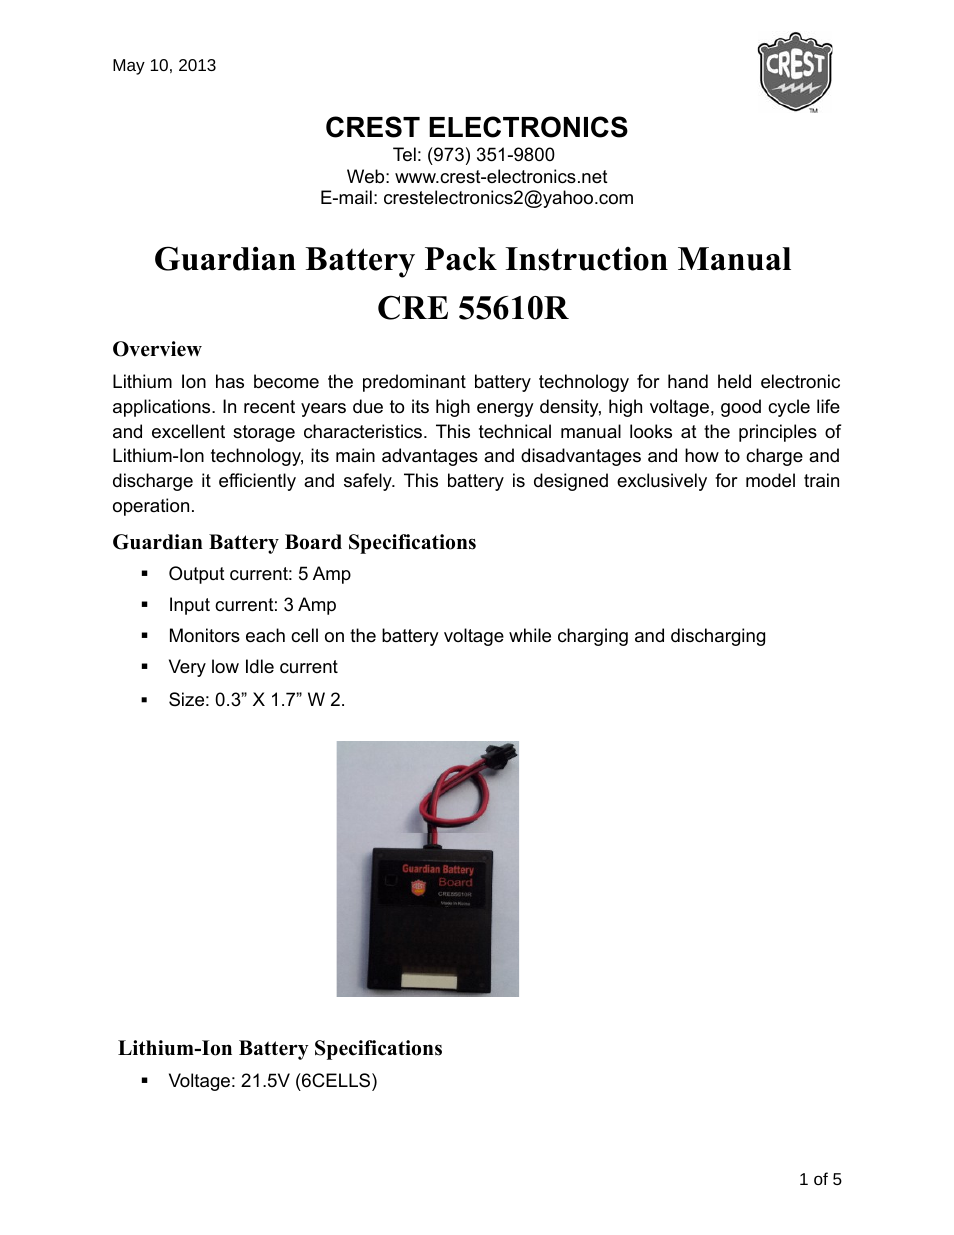 Crest Electronics Cre55610r Guardian Battery Charger User Manual 6 Lithiumion One Schematic Pages